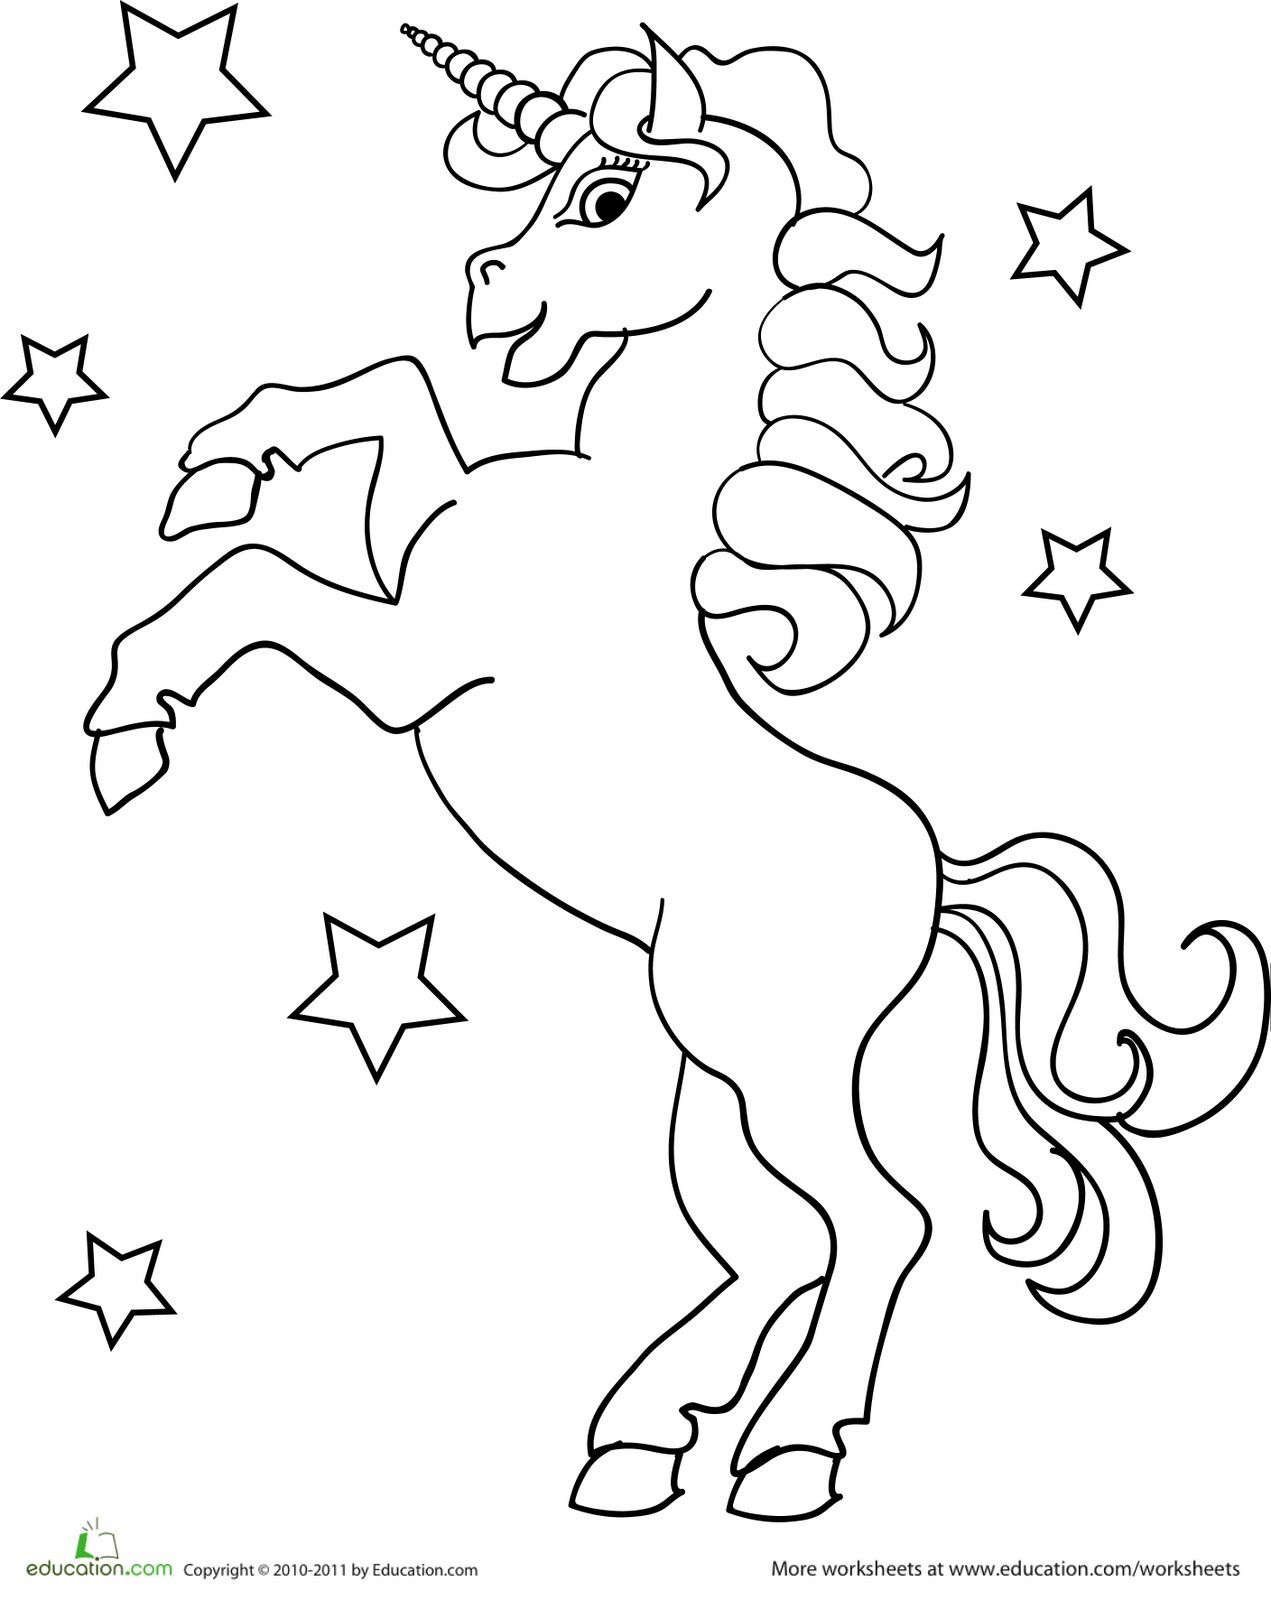 Coloring Page Unicorn Jpg 1271 1600 Unicorn Coloring Pages Rainbow Unicorn Party Unicorn Crafts